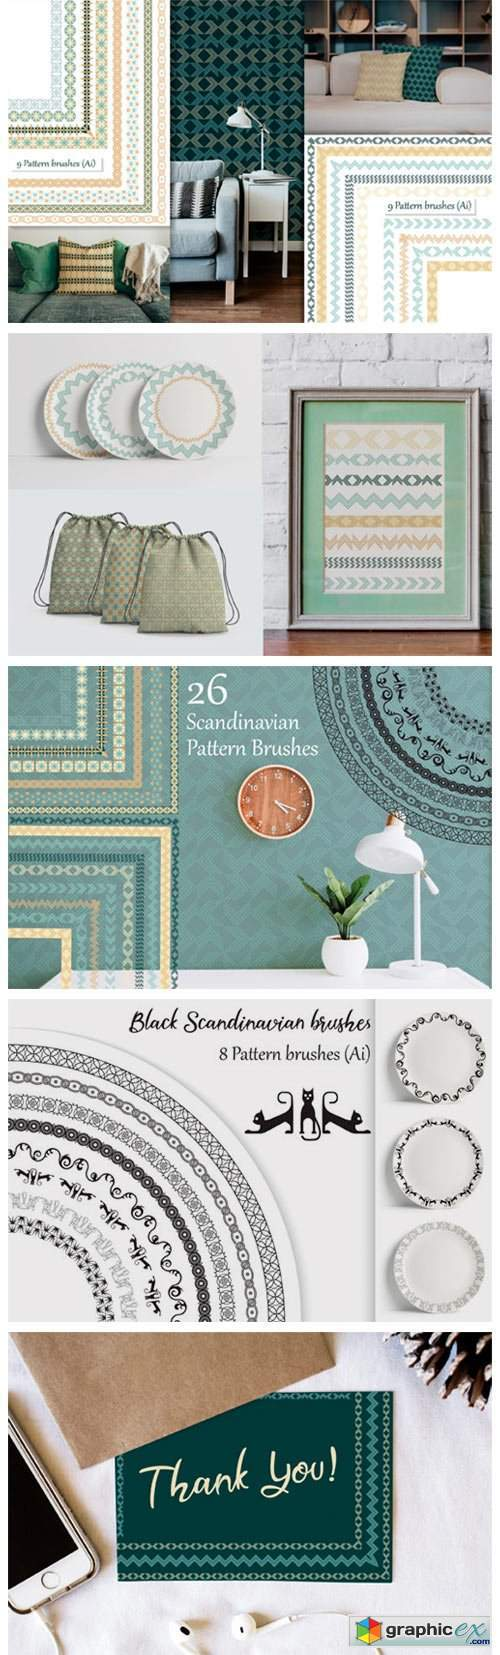 Scandinavian Pattern Brushes